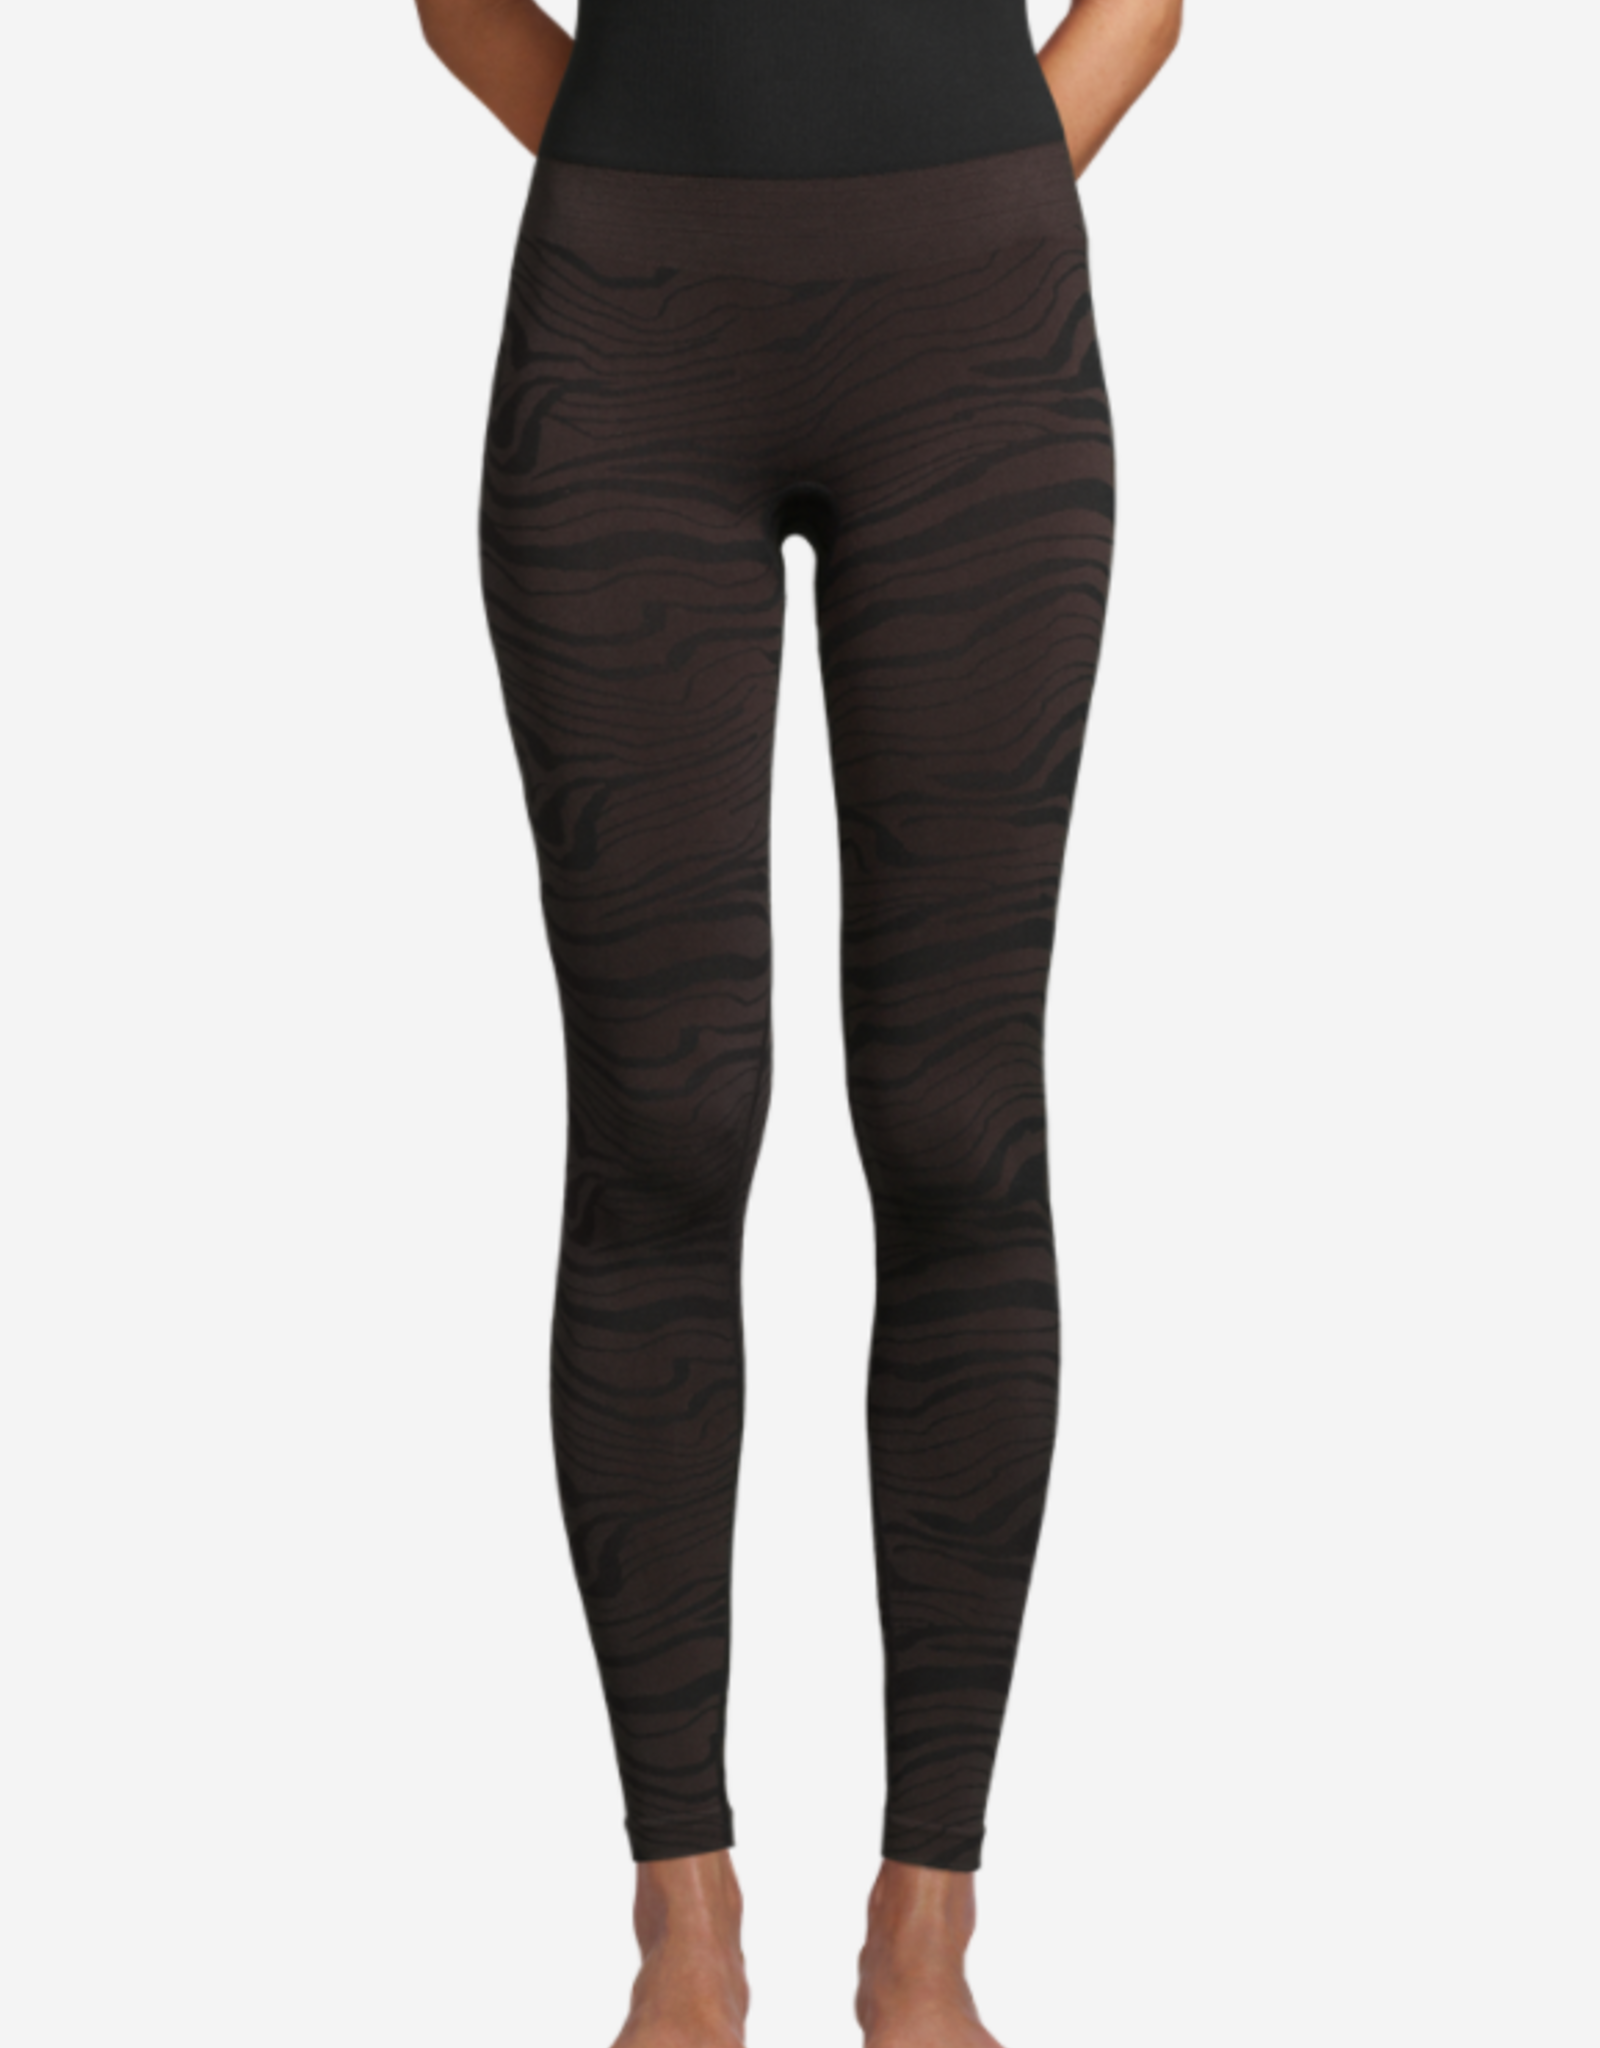 Casall Seamless melted tights (ref 20850)